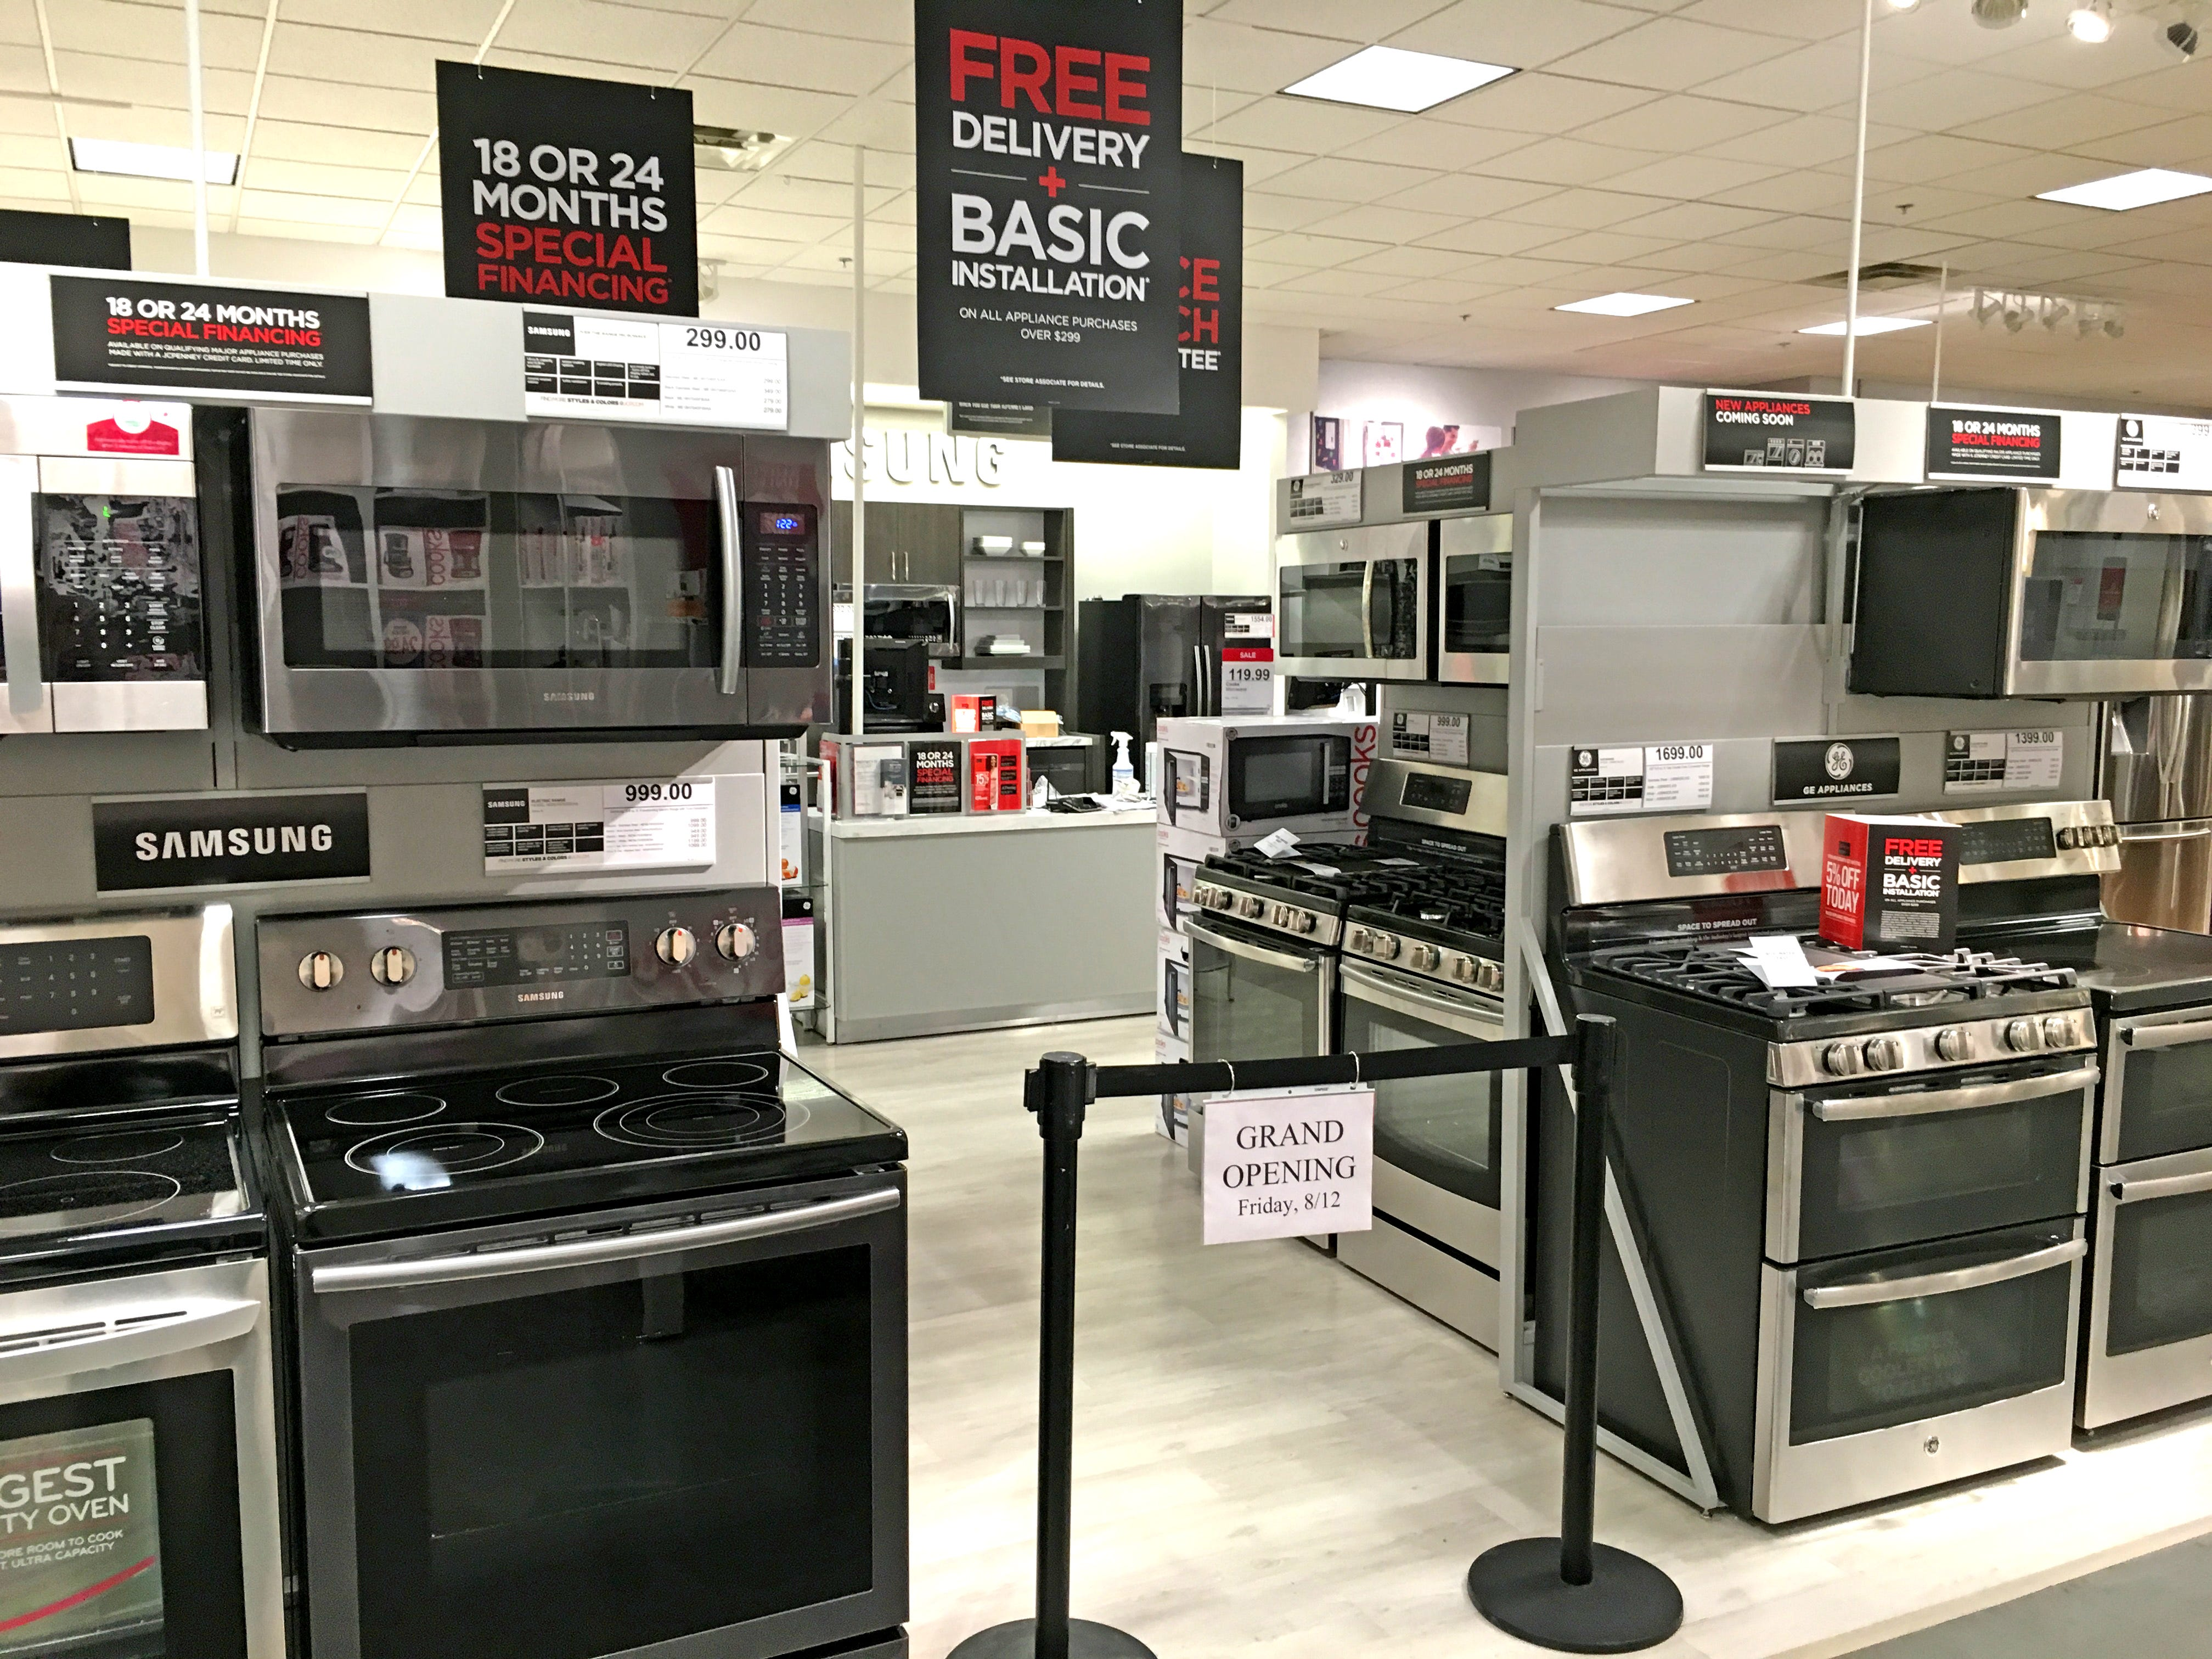 The new major appliance department opens Friday, Aug. 12, at all three Knoxville J.C. Penney department stores, including this one at the West Town Mall location.